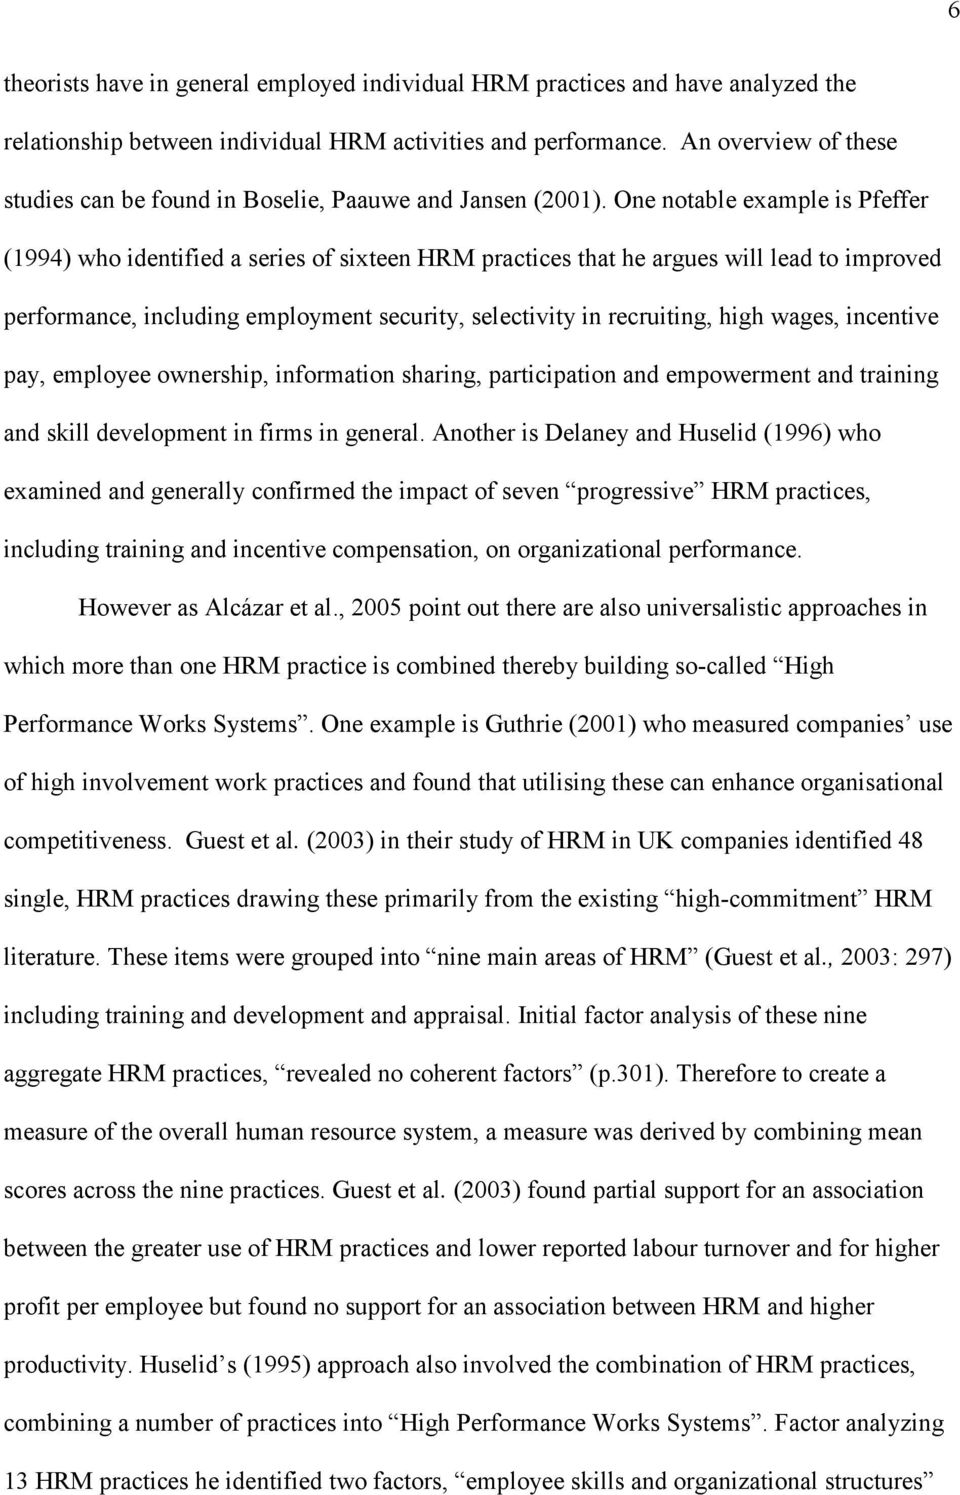 One notable example is Pfeffer (1994) who identified a series of sixteen HRM practices that he argues will lead to improved performance, including employment security, selectivity in recruiting, high